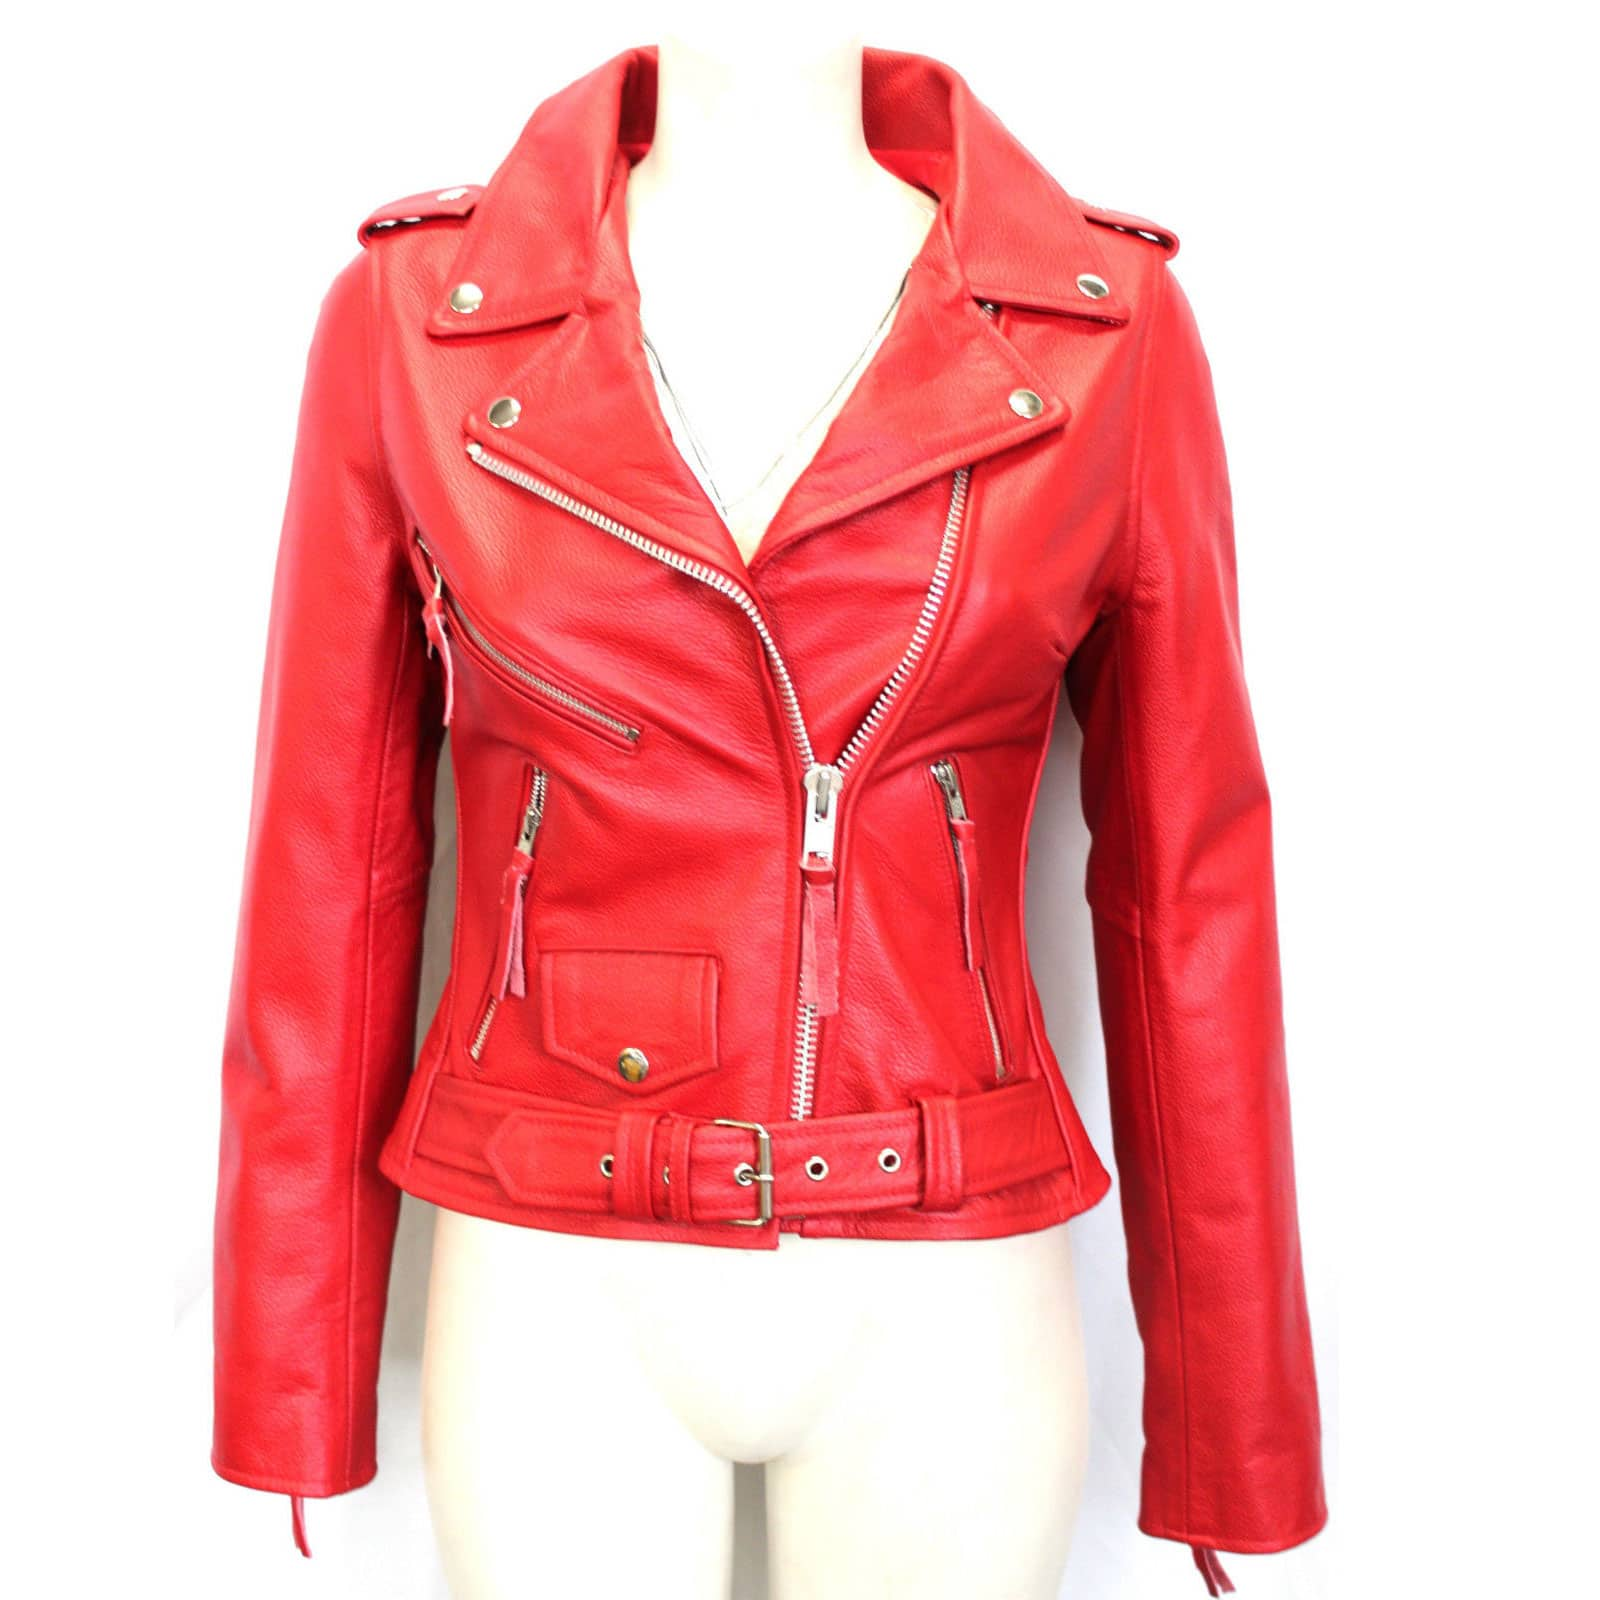 Red Leather Jacket brando biker style red leather jacket for women - custom made JWNEZOA